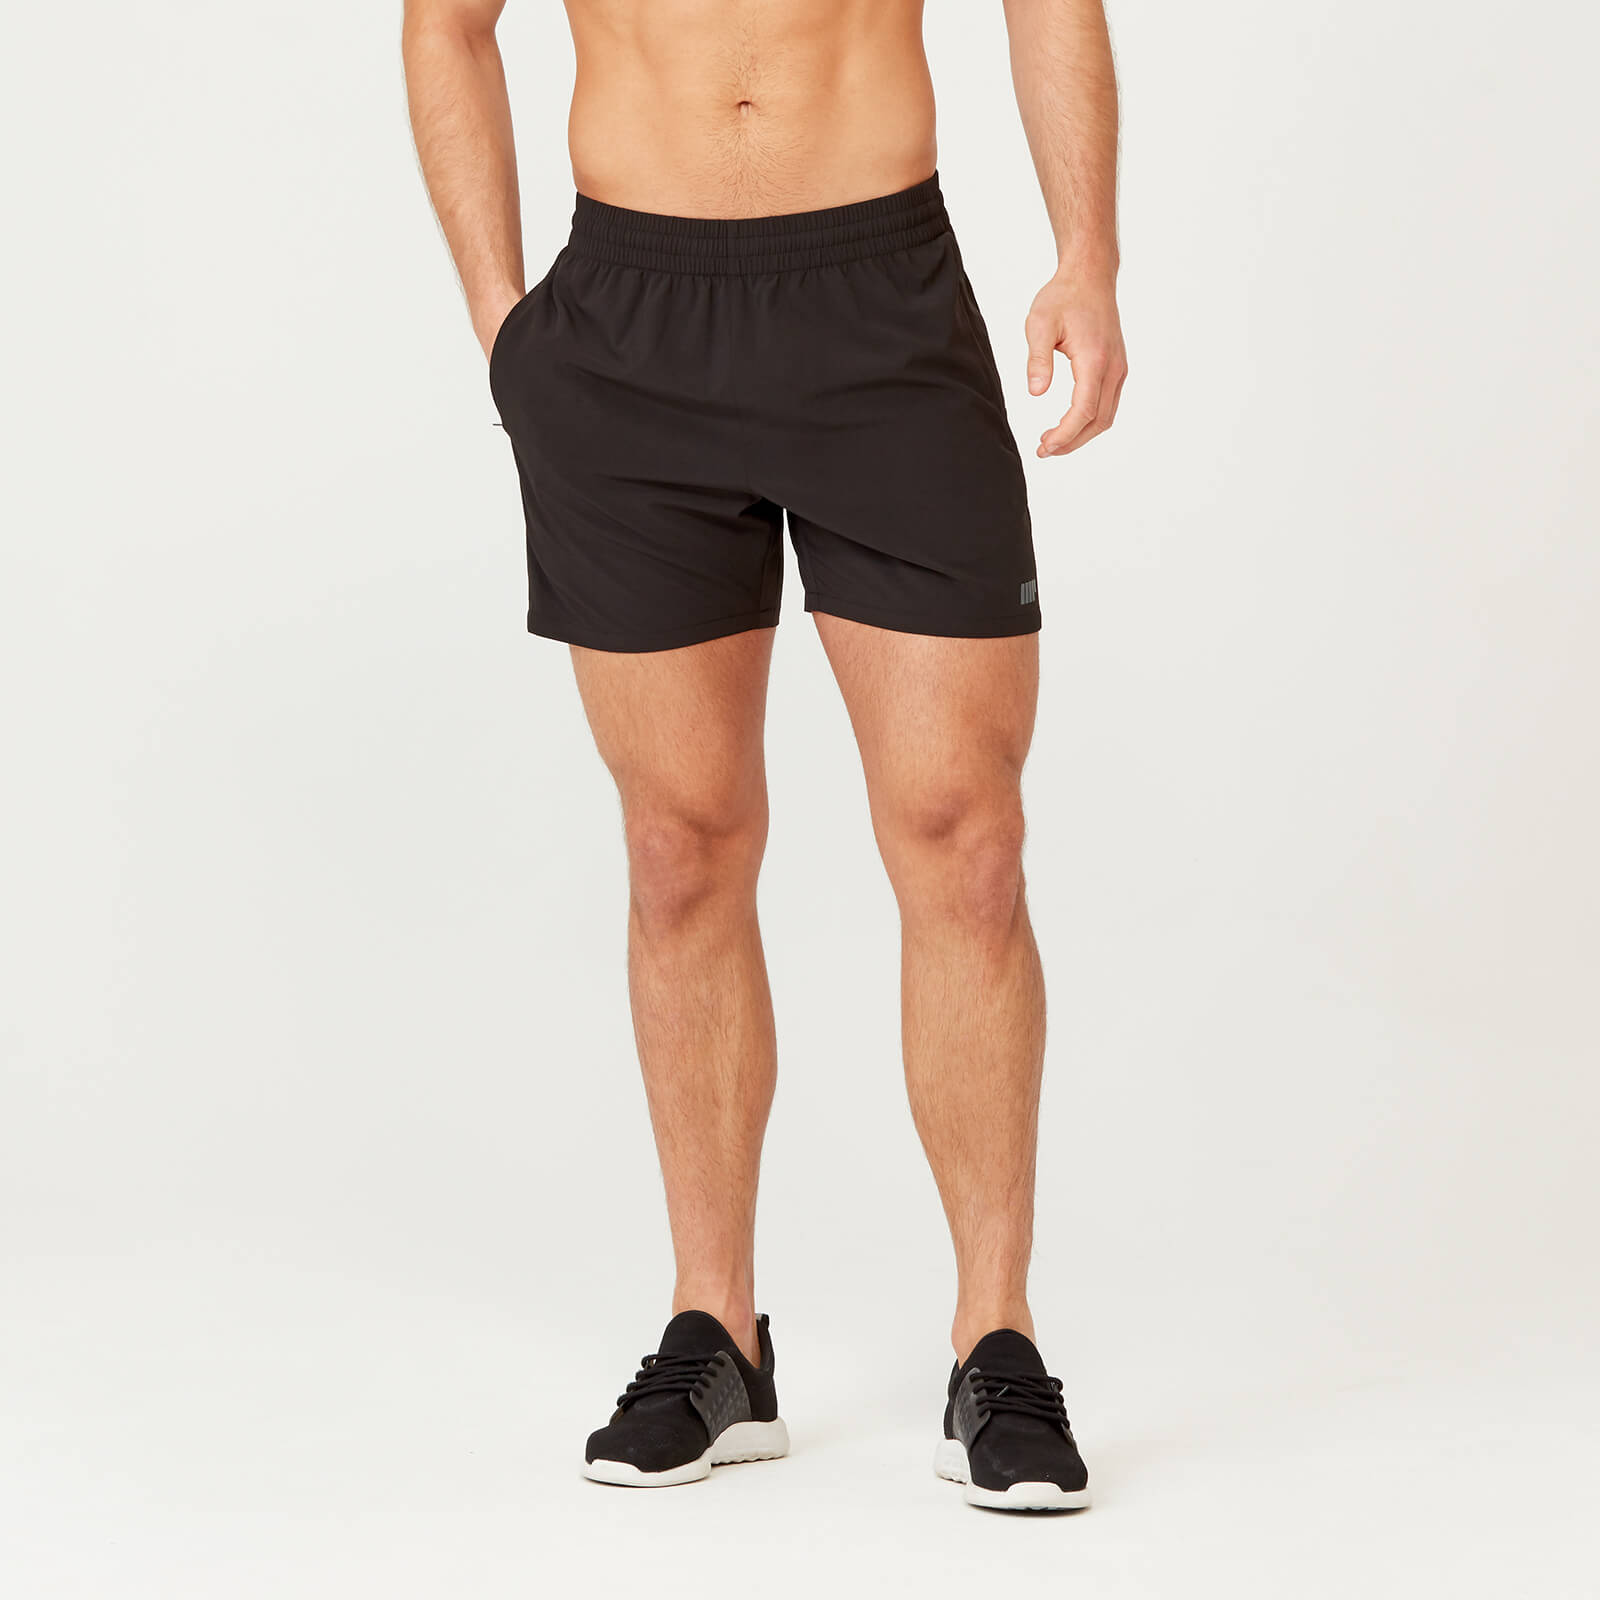 Sprint Shorts - Black - S